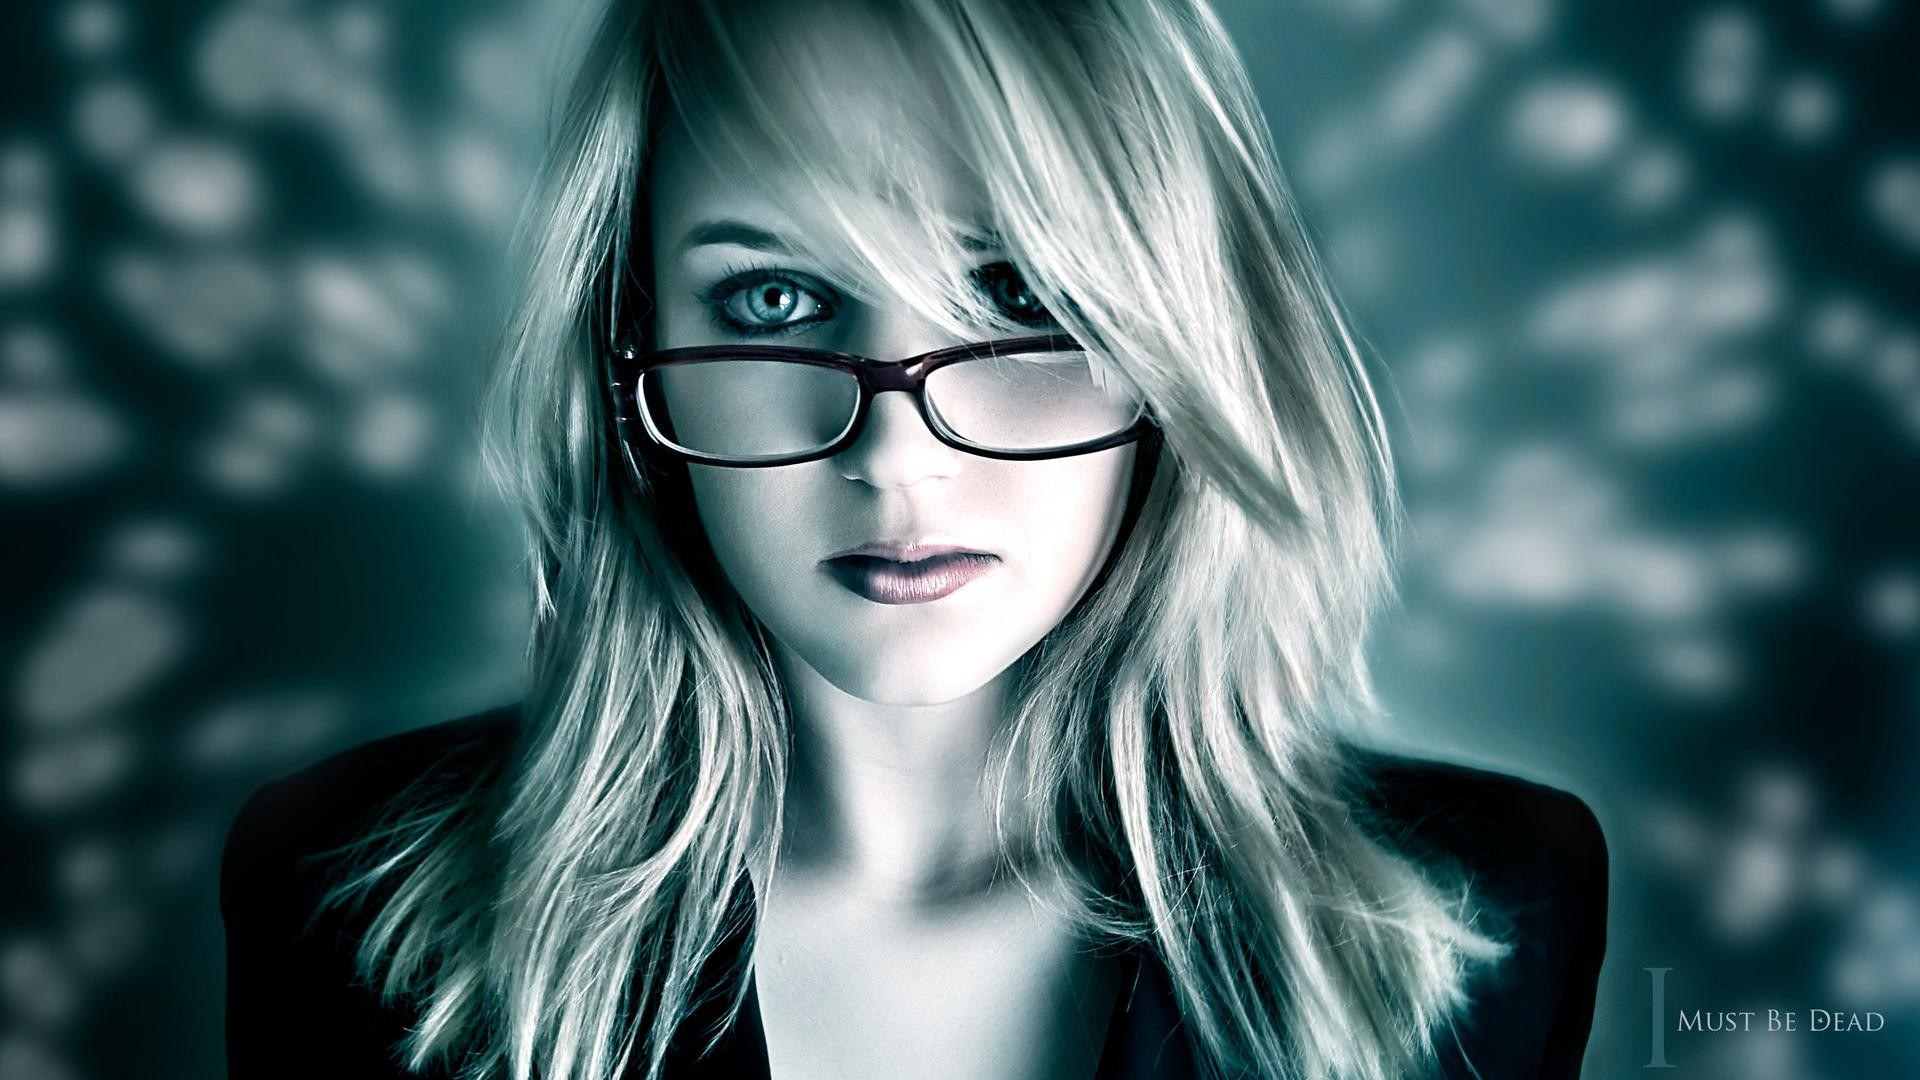 Girls With Glasses Wallpaper